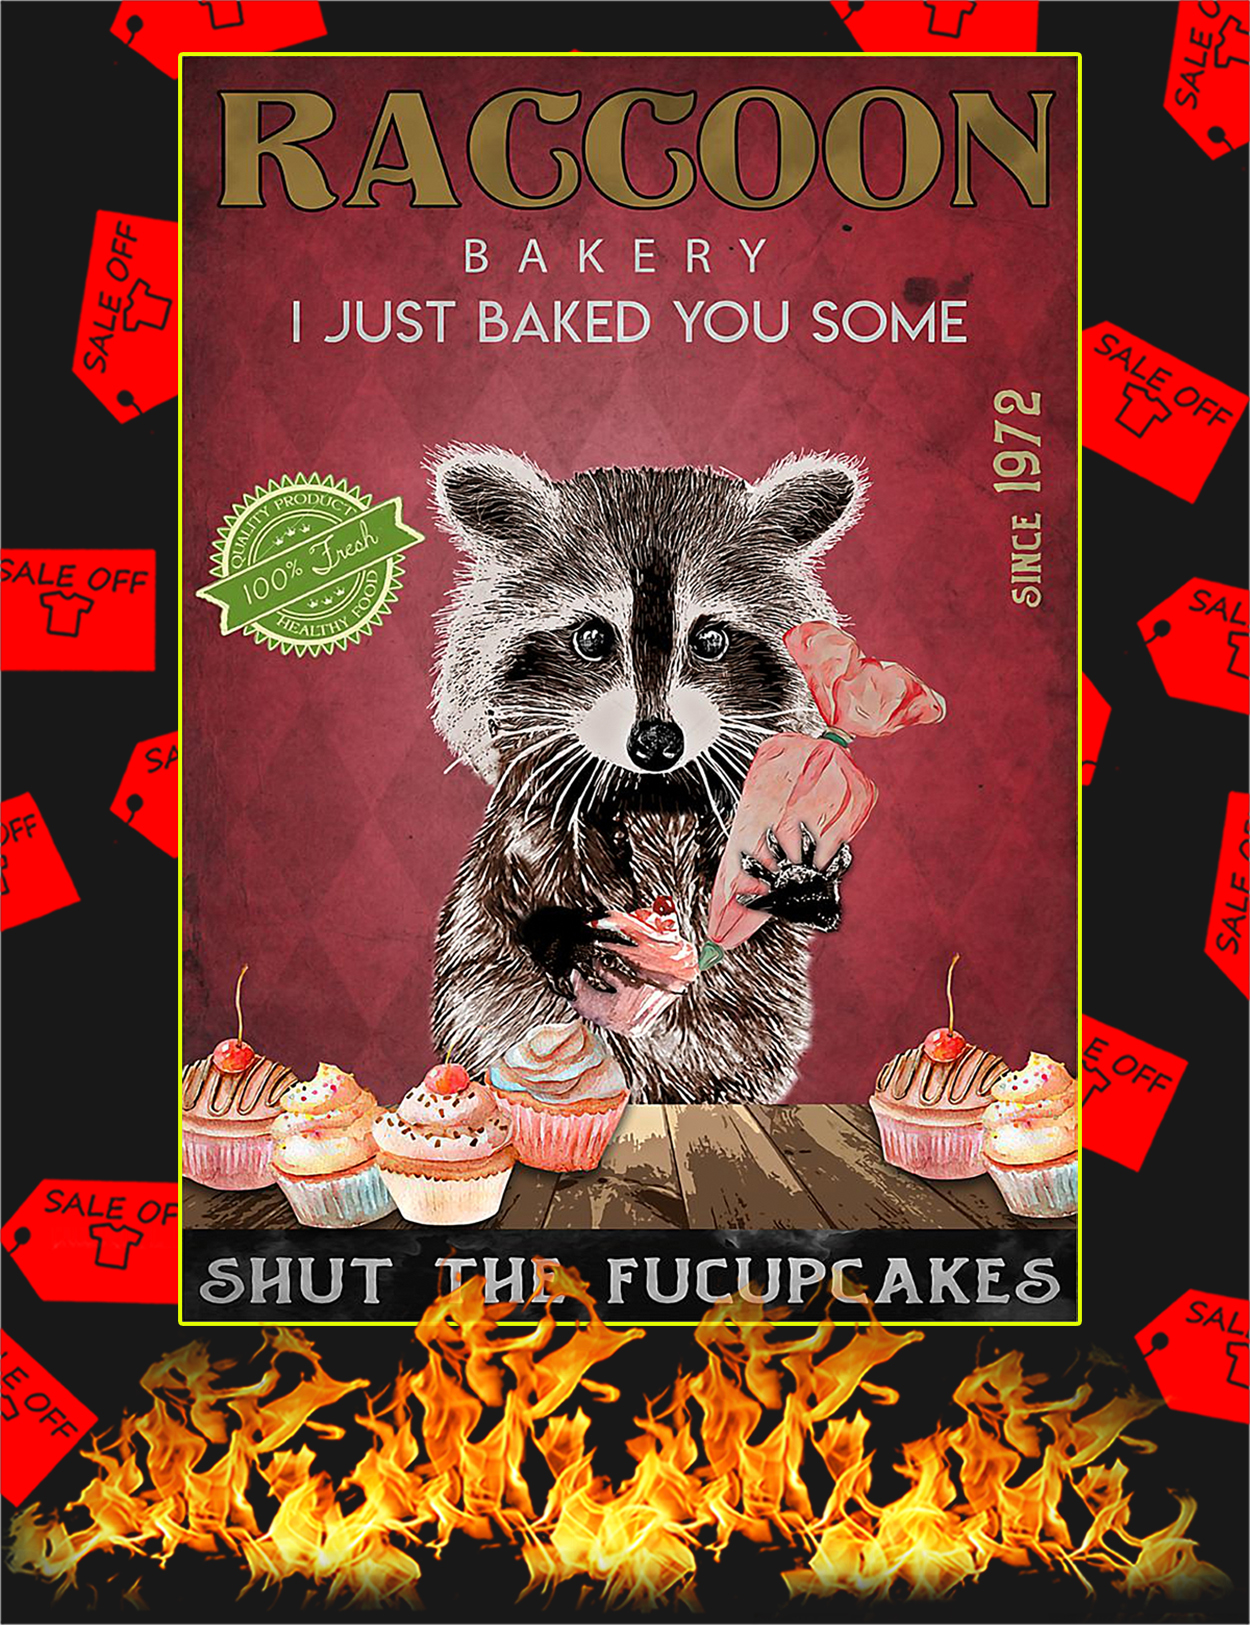 Raccoon bakery I just baked you some poster - A2